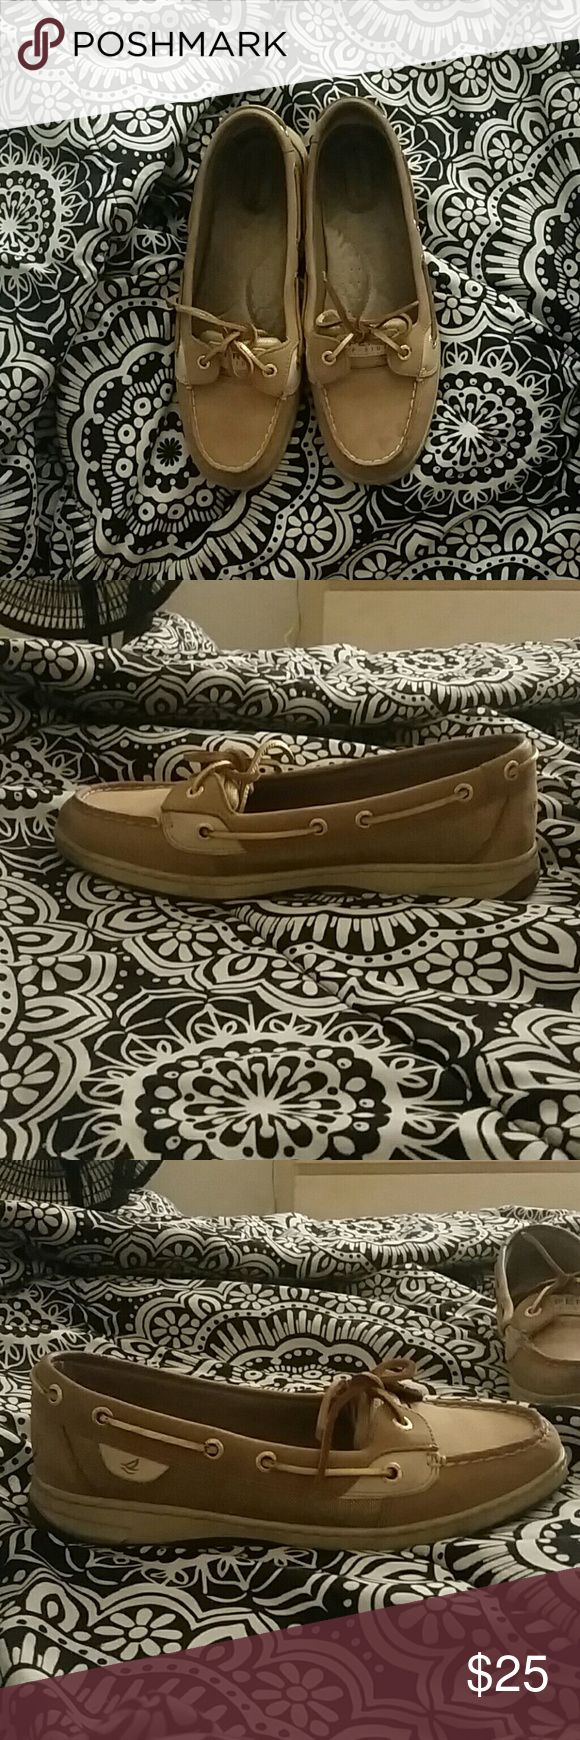 Sperry Angelfish Barely worn Sperry's. (Prices are negotiable) Sperry Top-Sider Shoes